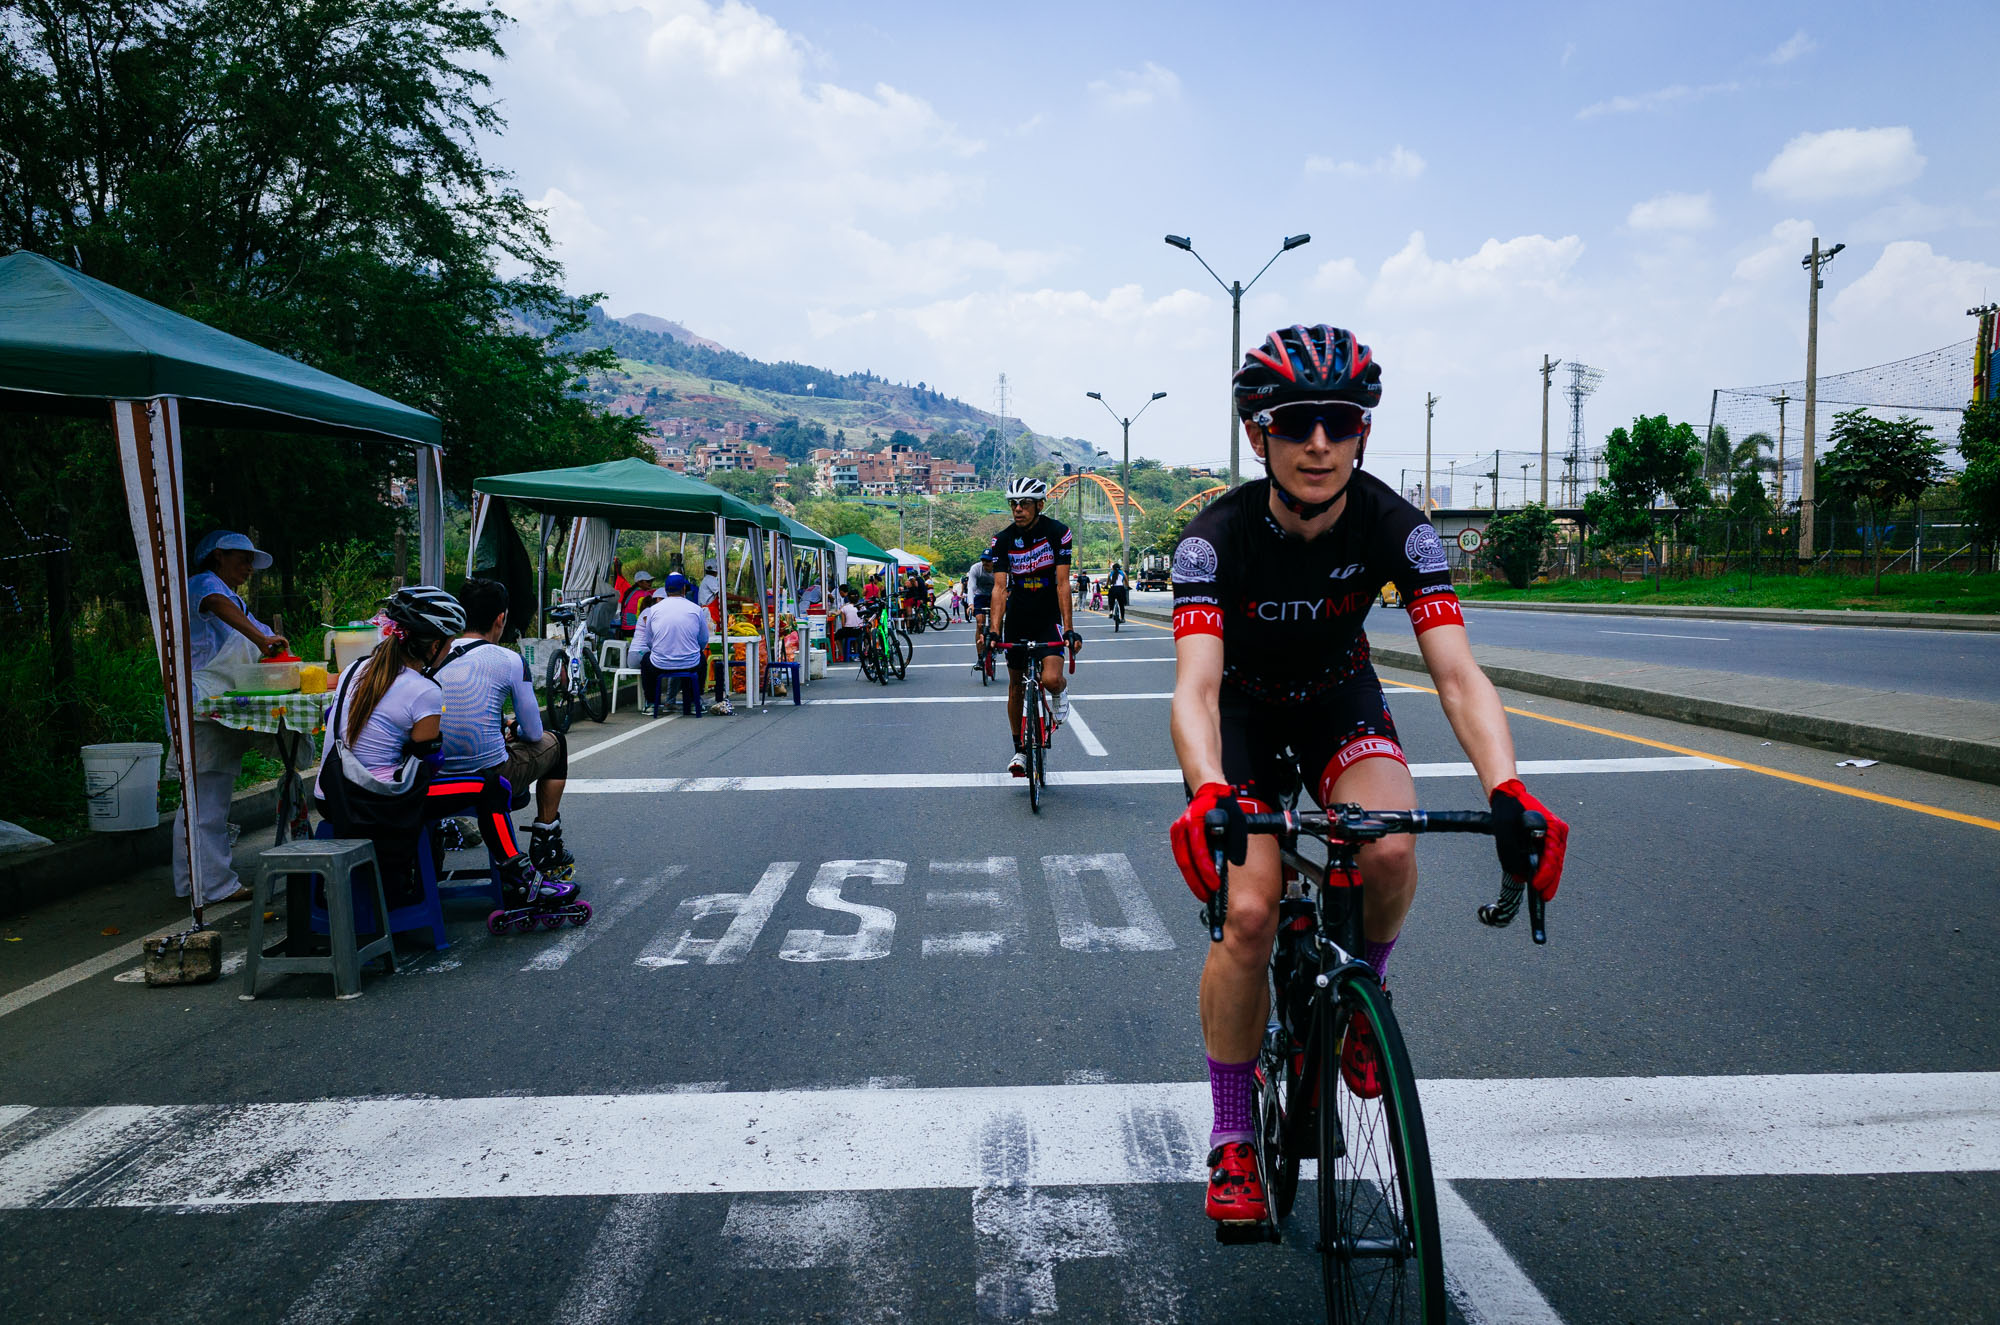 to-be-determined-photo-rhetoric-cycling-in-colombia-1010.jpg